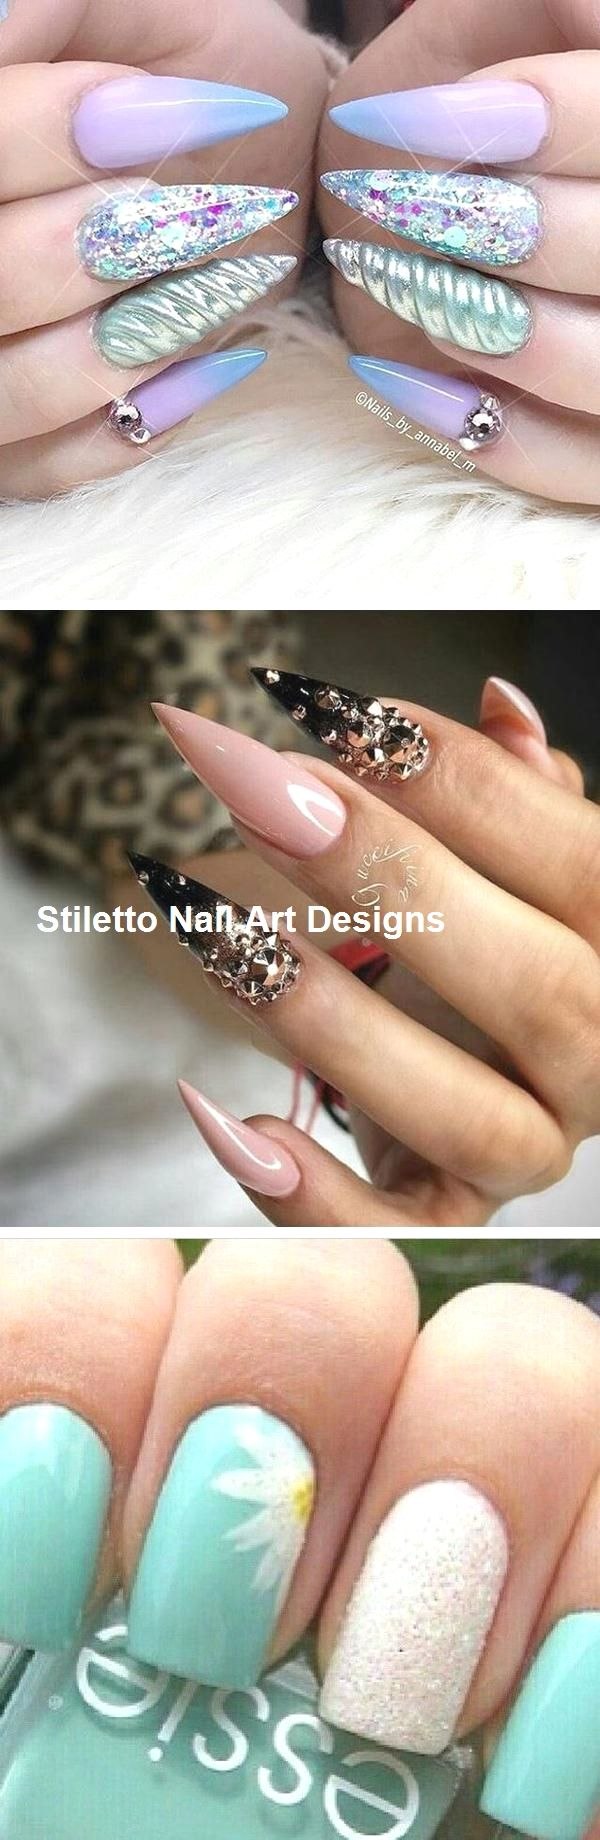 (notitle) – Nail Design